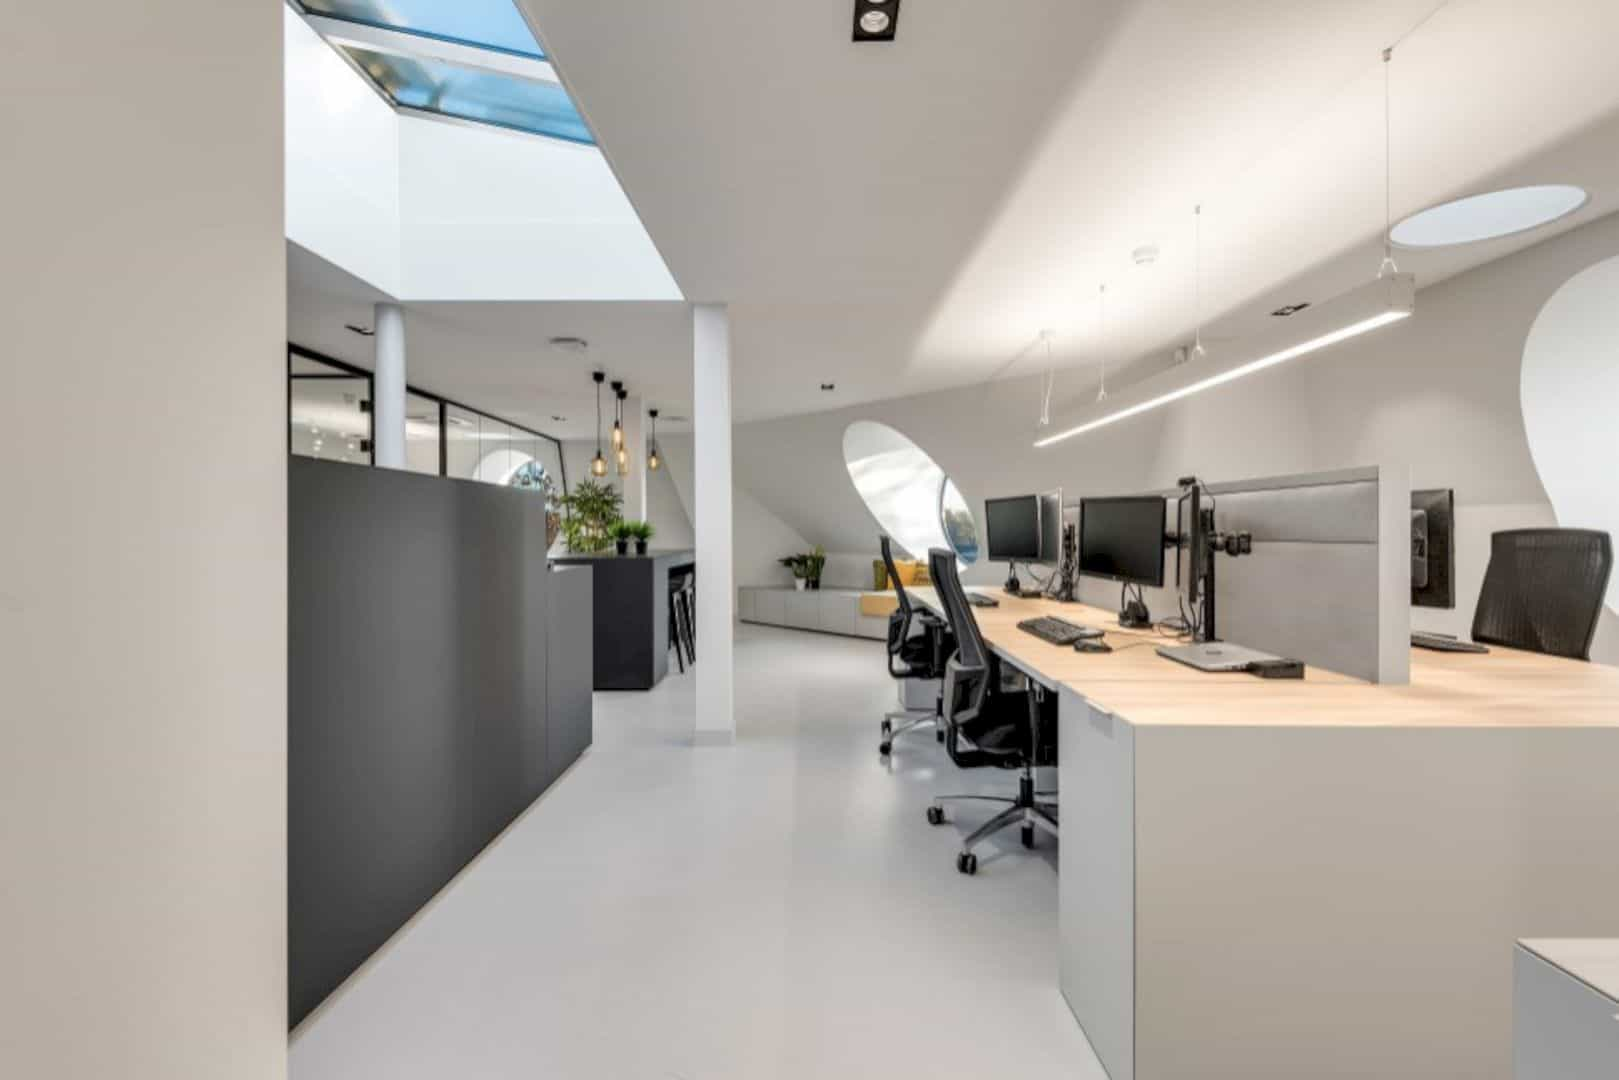 EQT: An Office Villa of Private Equity Firm with New Interior Design